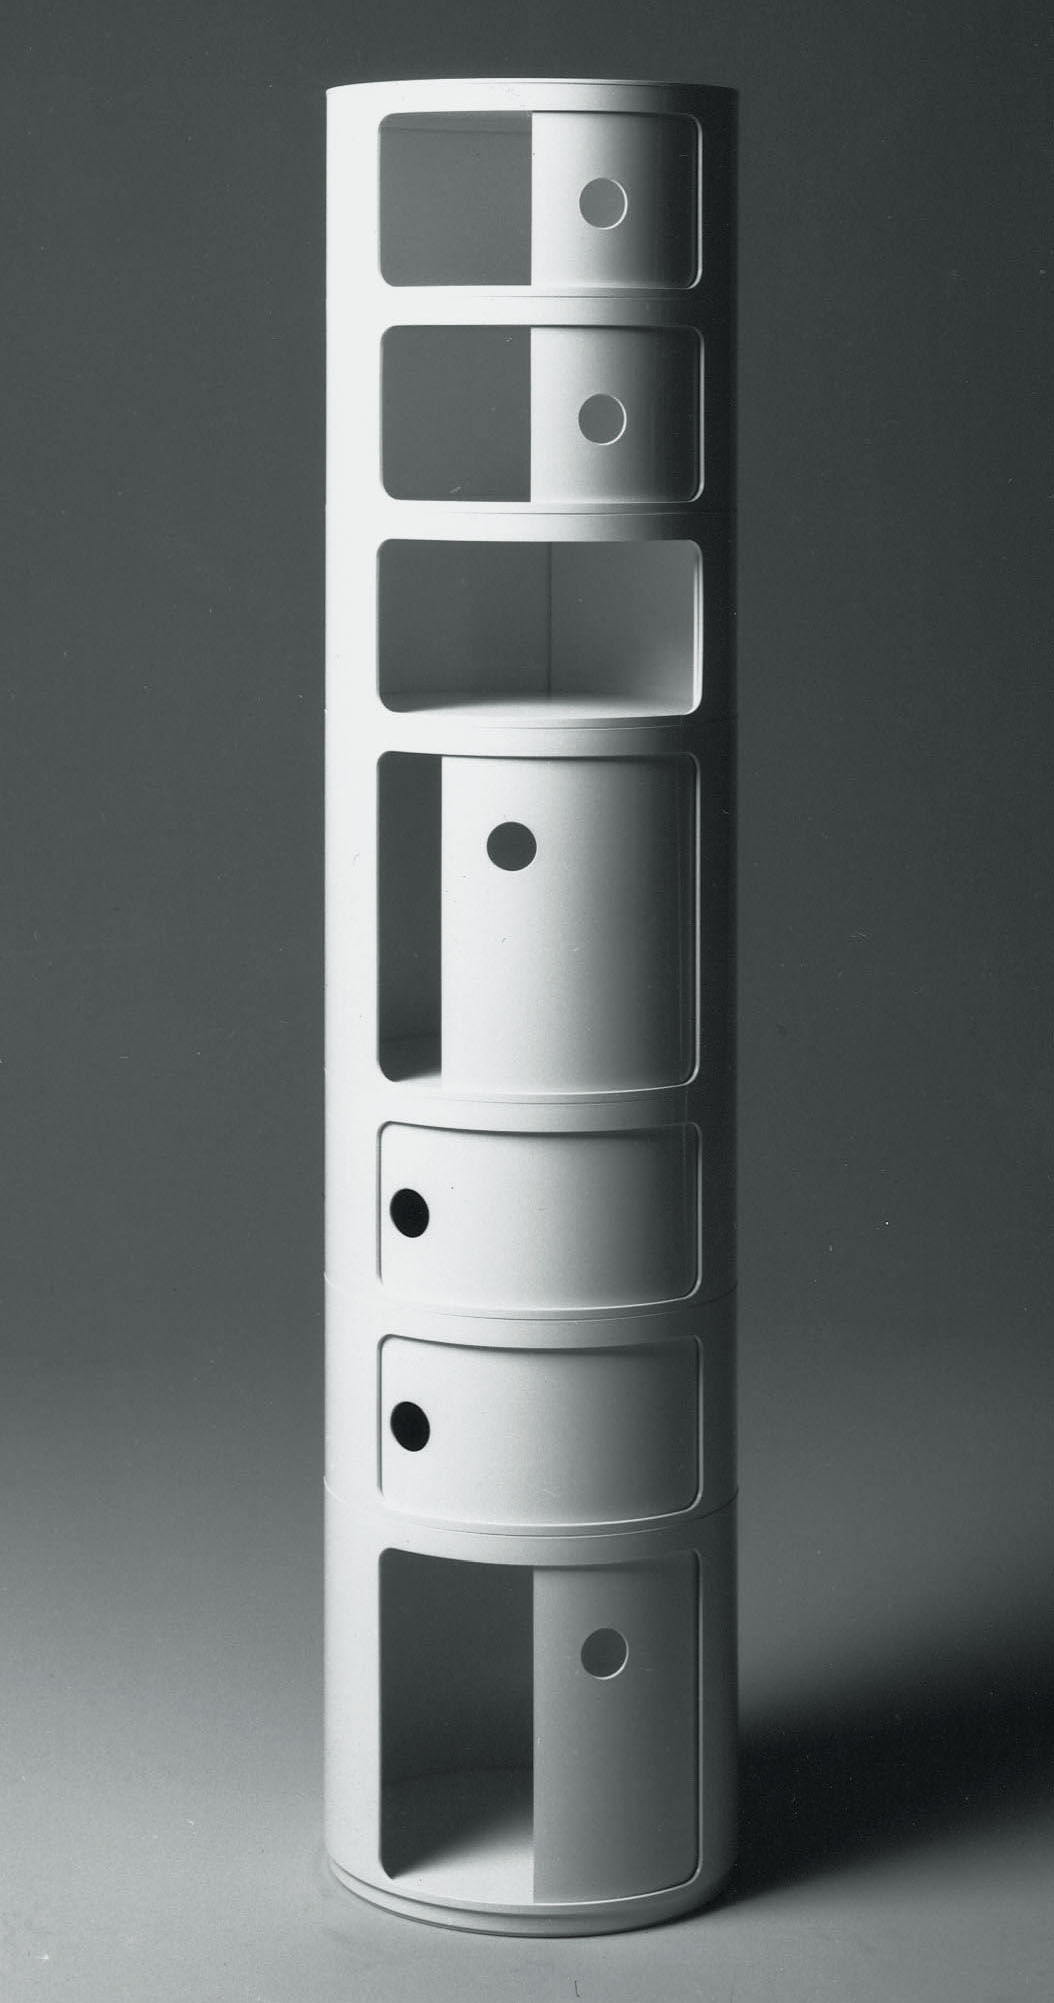 Meuble Compo Componibili Storage - 2 Elements Ivory White By Kartell